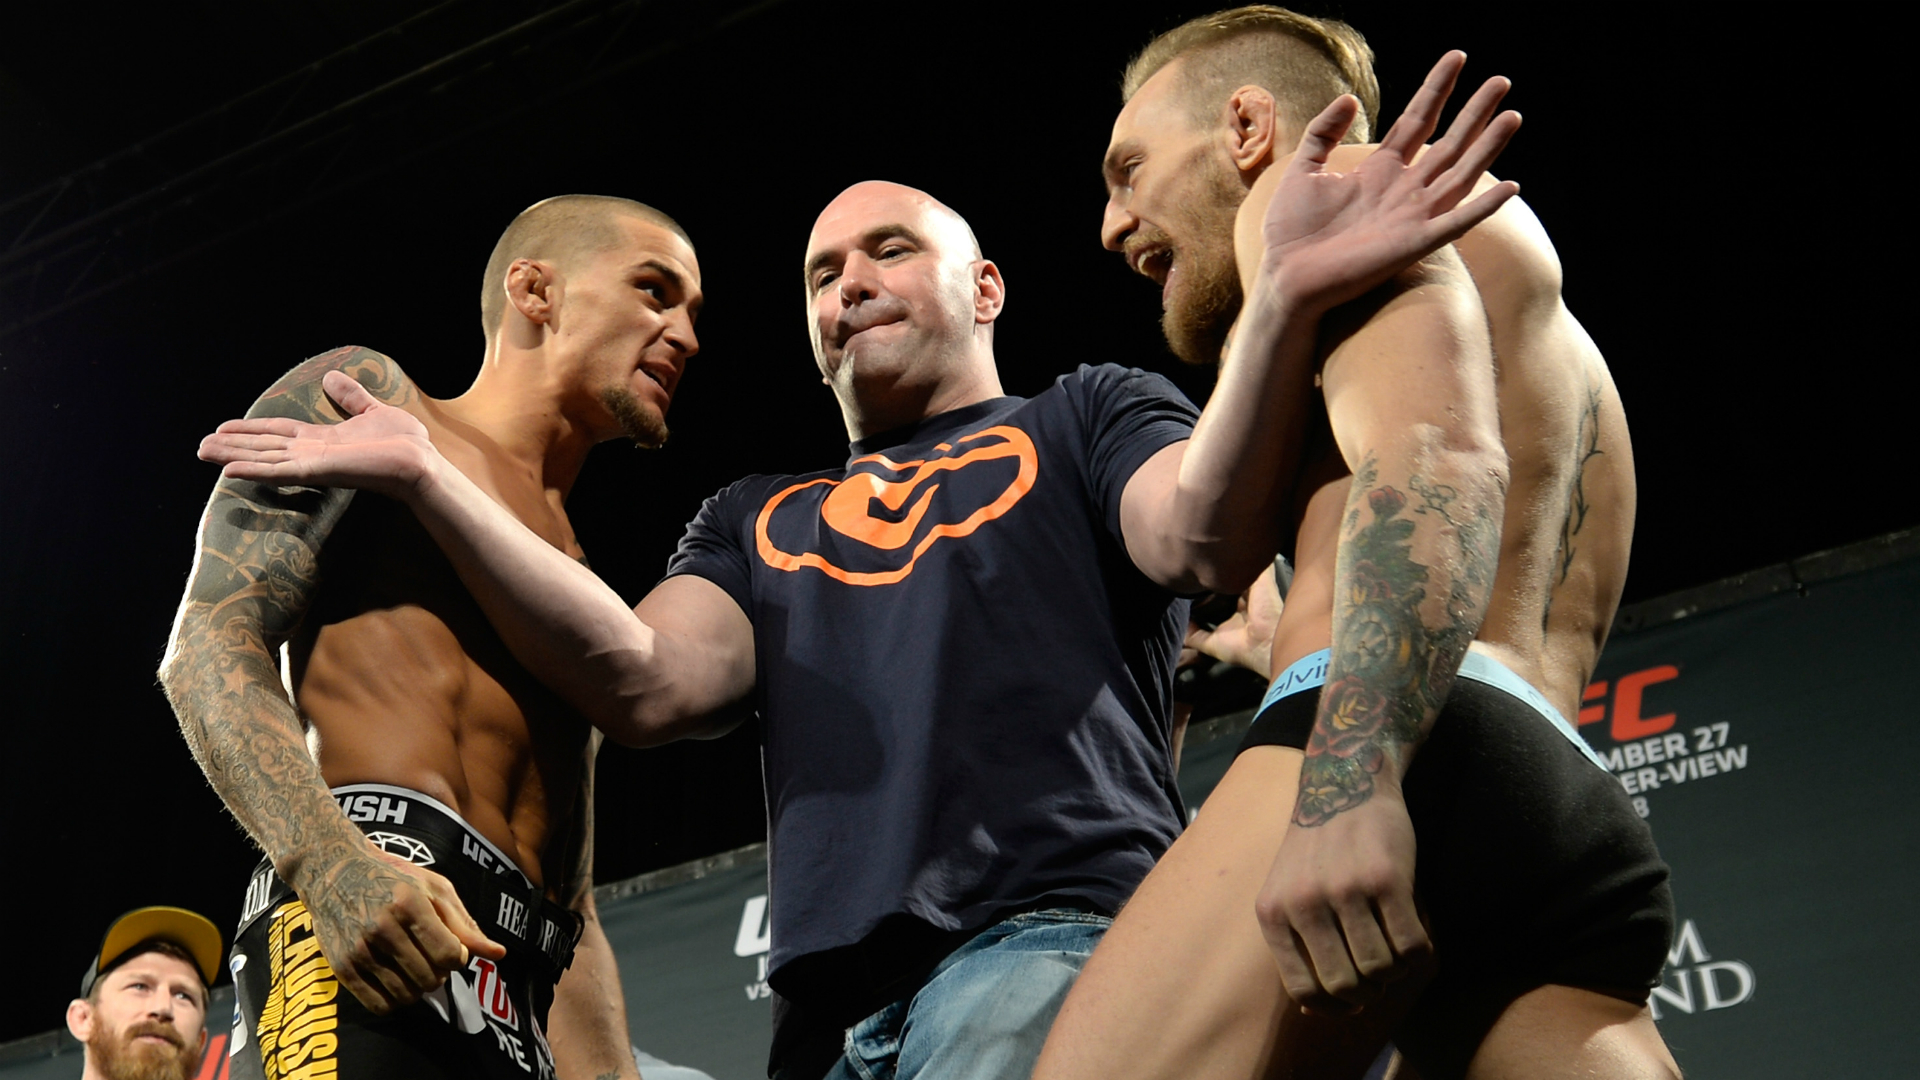 McGregor-Poirier bout not booked – UFC president White